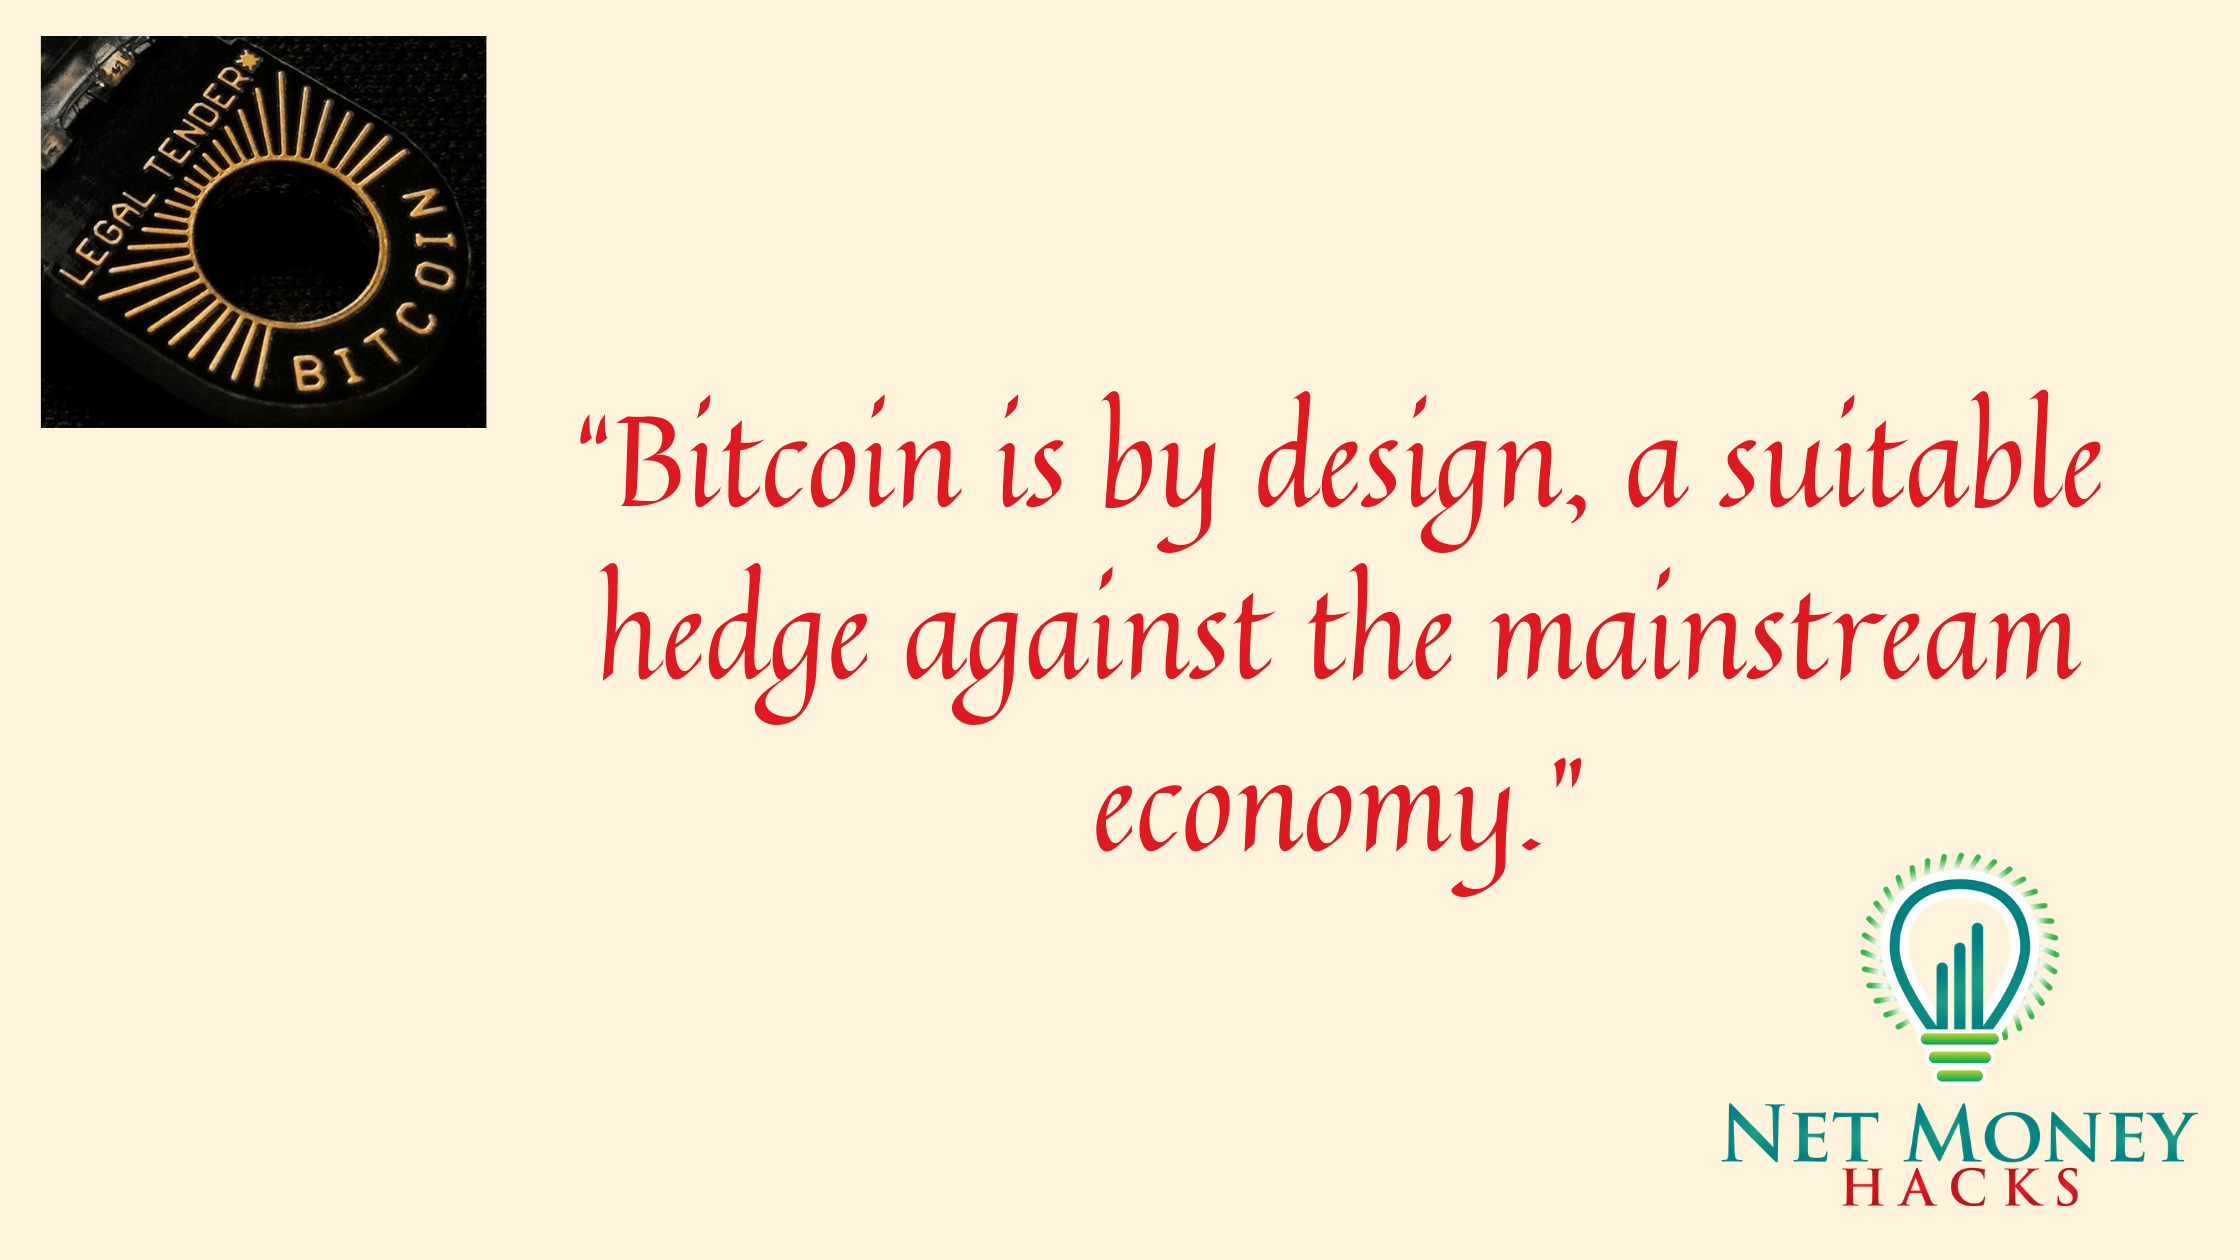 A banner showing bitcoin guide quote design as a hedge